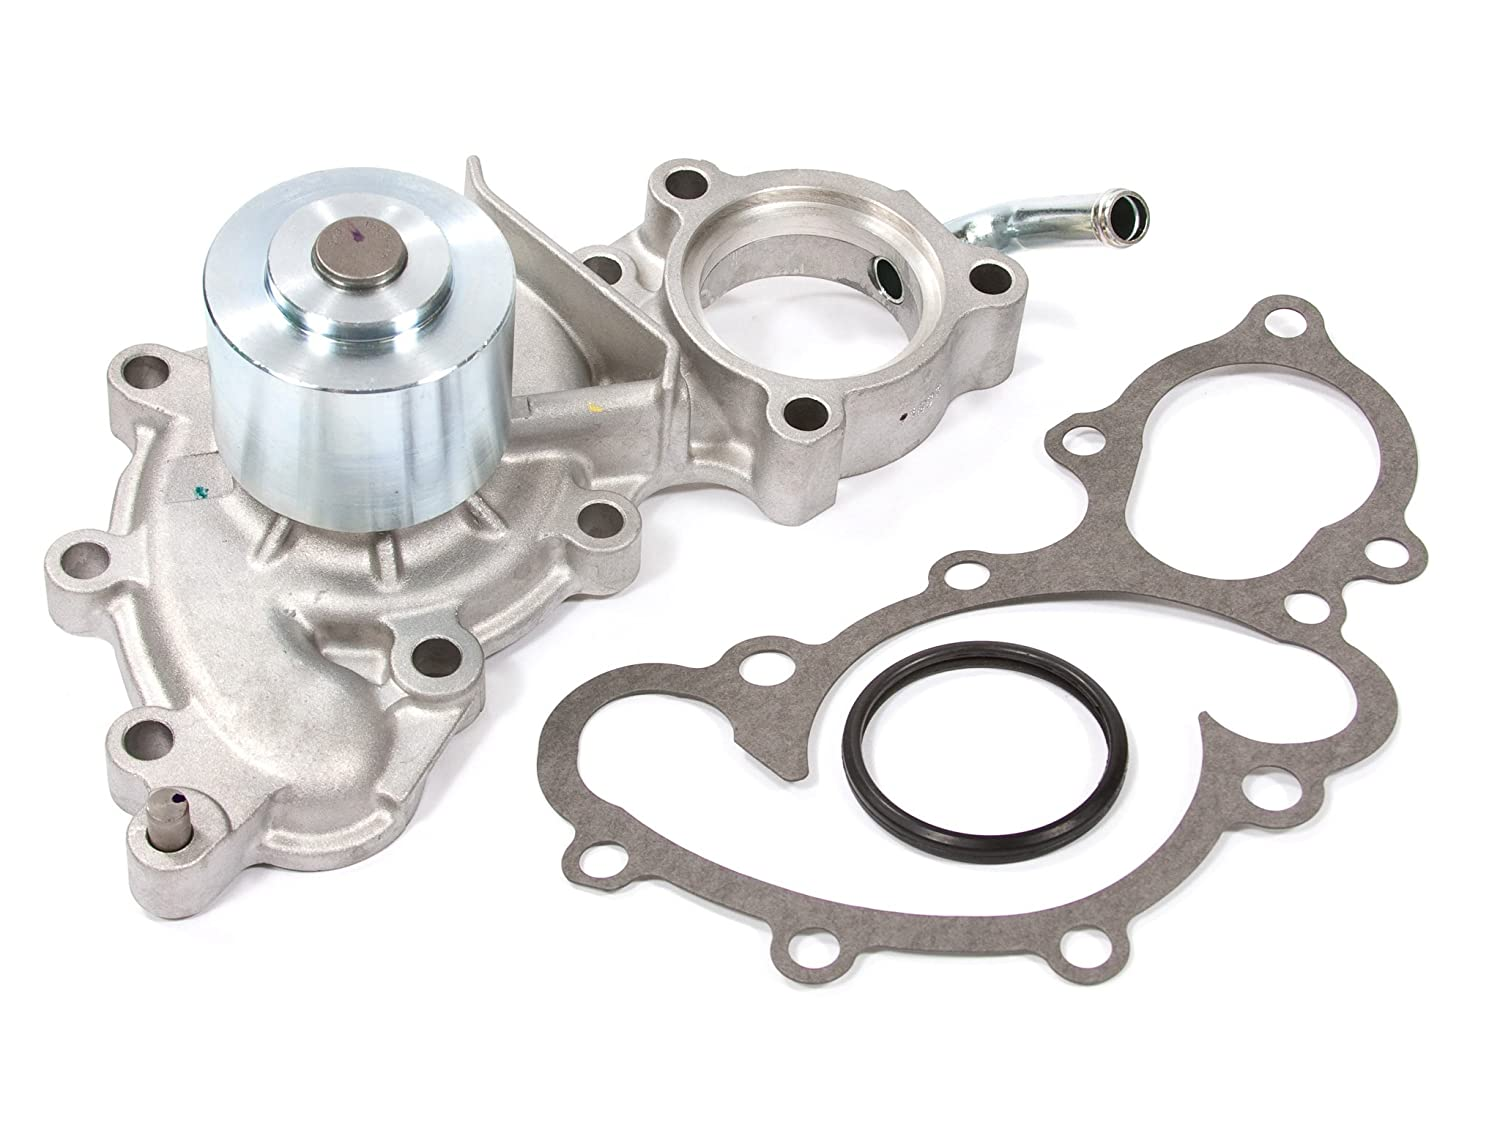 Evergreen Tbk154wpt 88 92 Toyota 4runner Pickup 30 Sohc 3vze Timing Belt Tensioner Kit Water Pump With Outlet Pipe Automotive